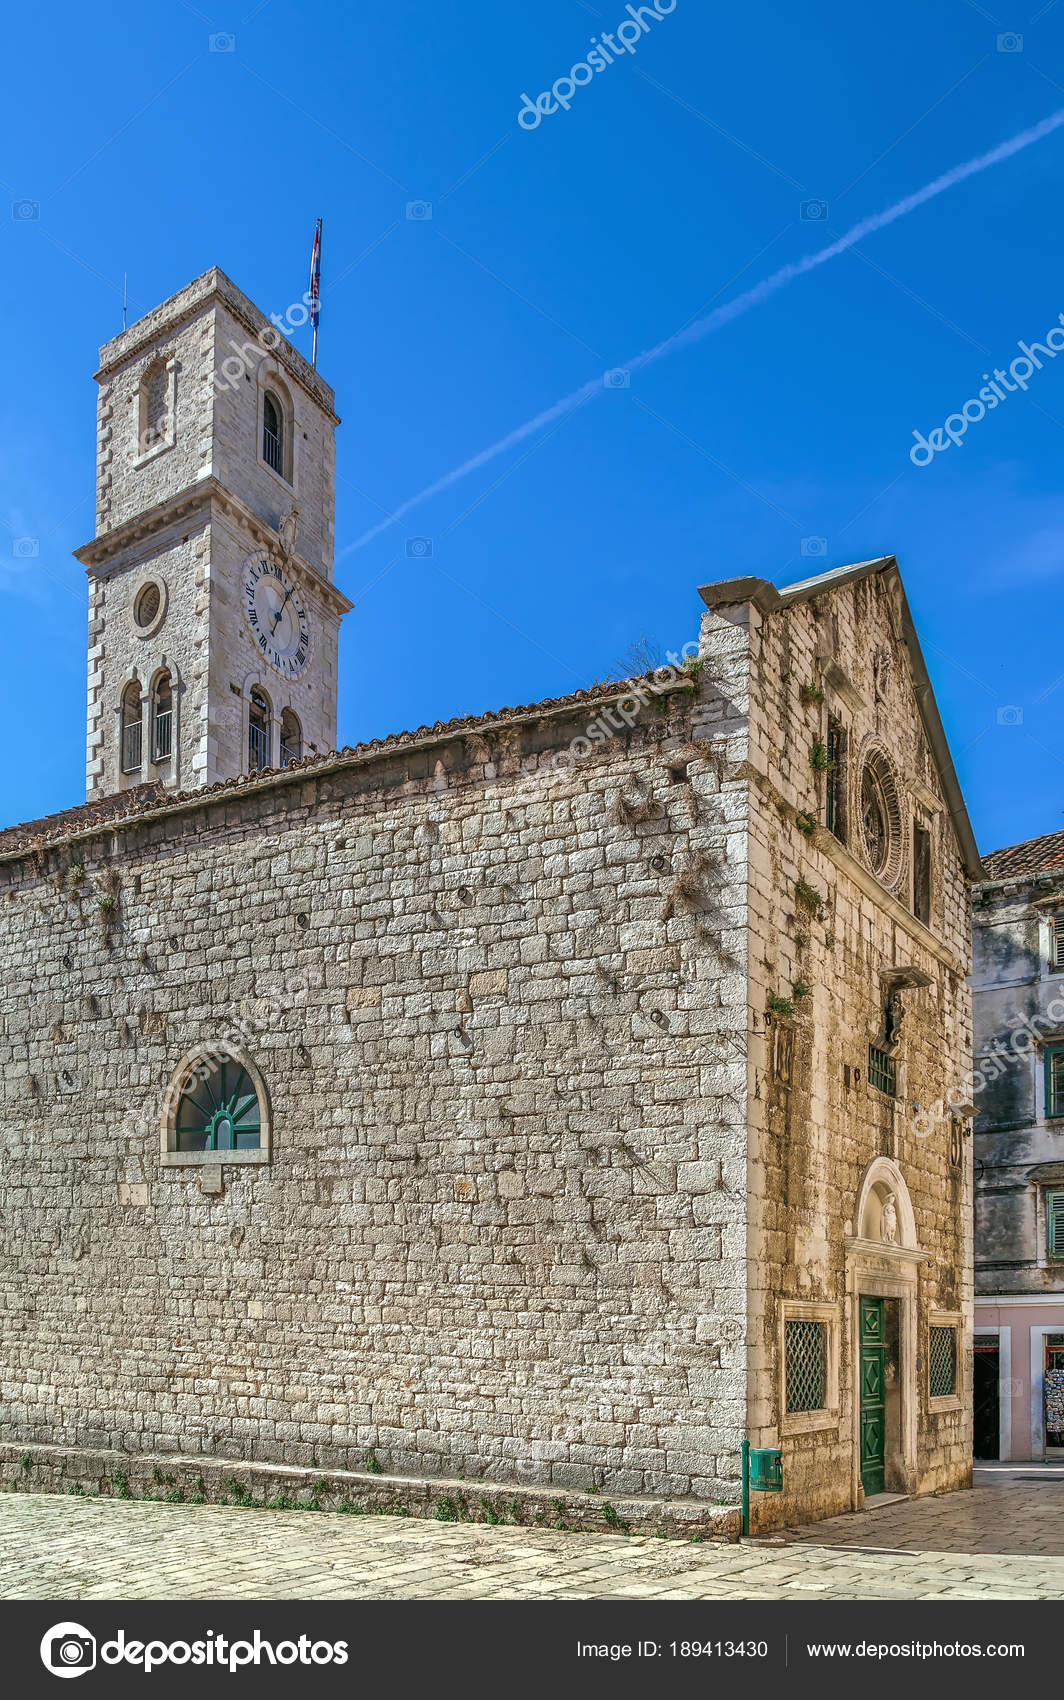 Church of st ivan sibenik croatia stock photo borisb17 189413430 catholic church of st ivan with clock tower sibenik croatia photo by borisb17 publicscrutiny Image collections